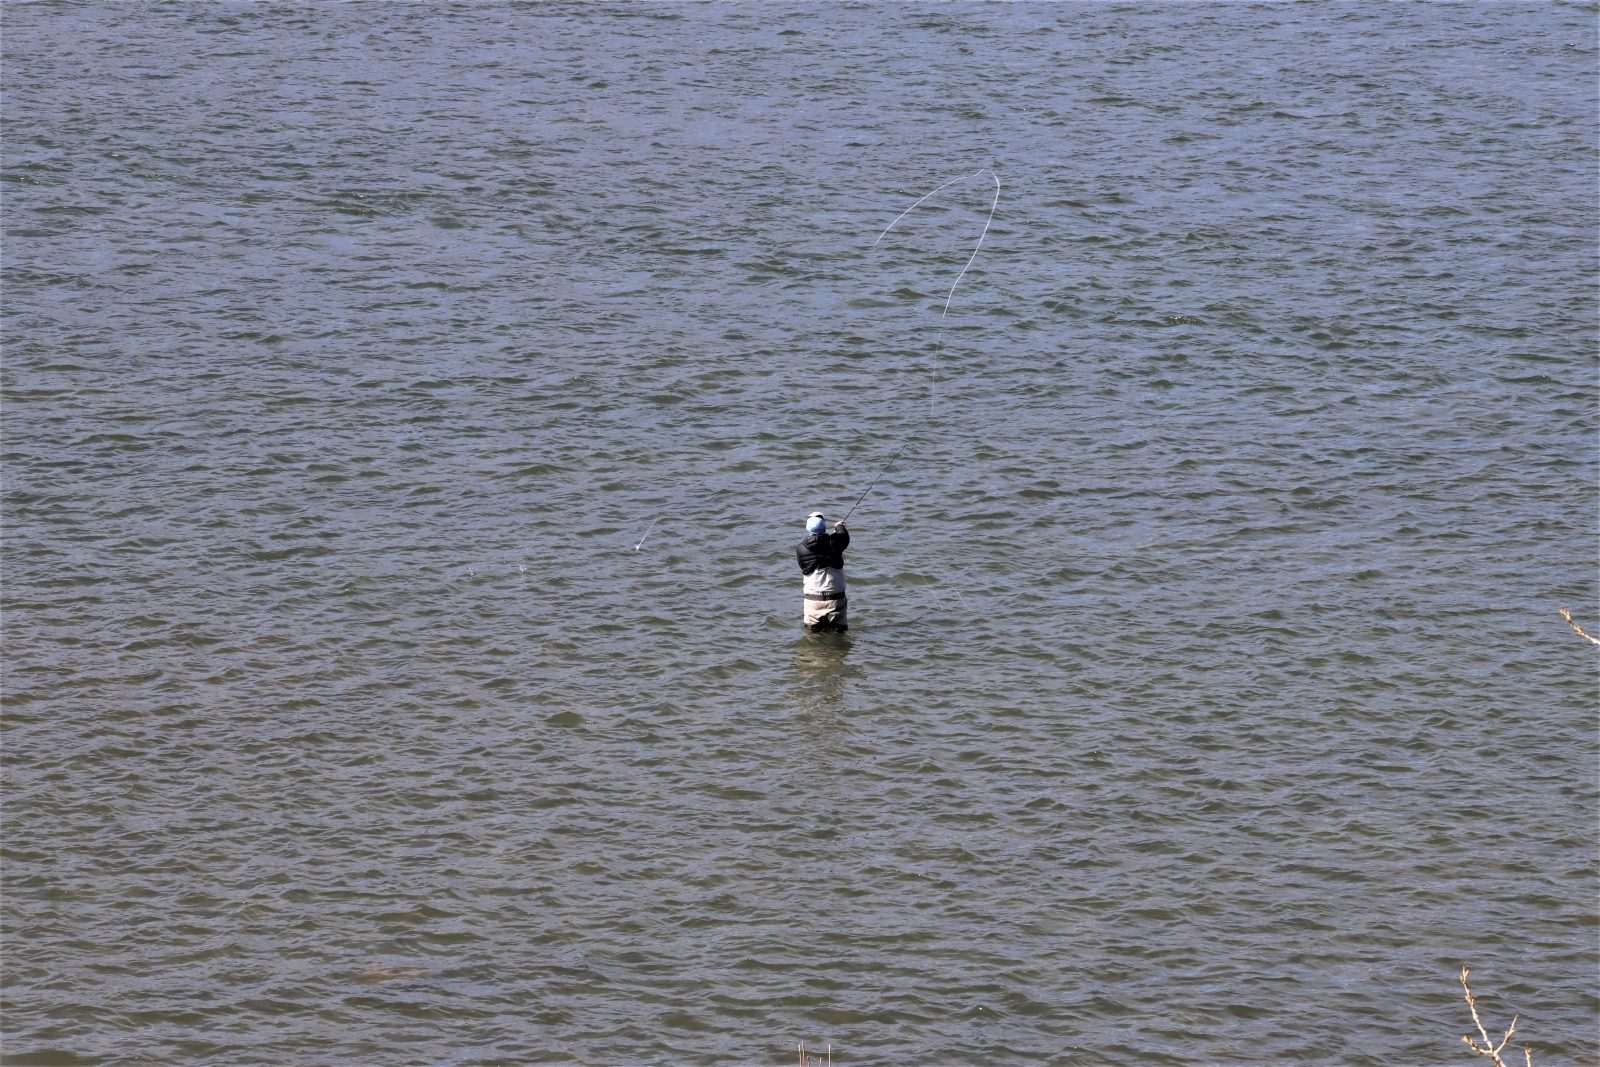 Lazy Day Fly Fishing on the Missouri river